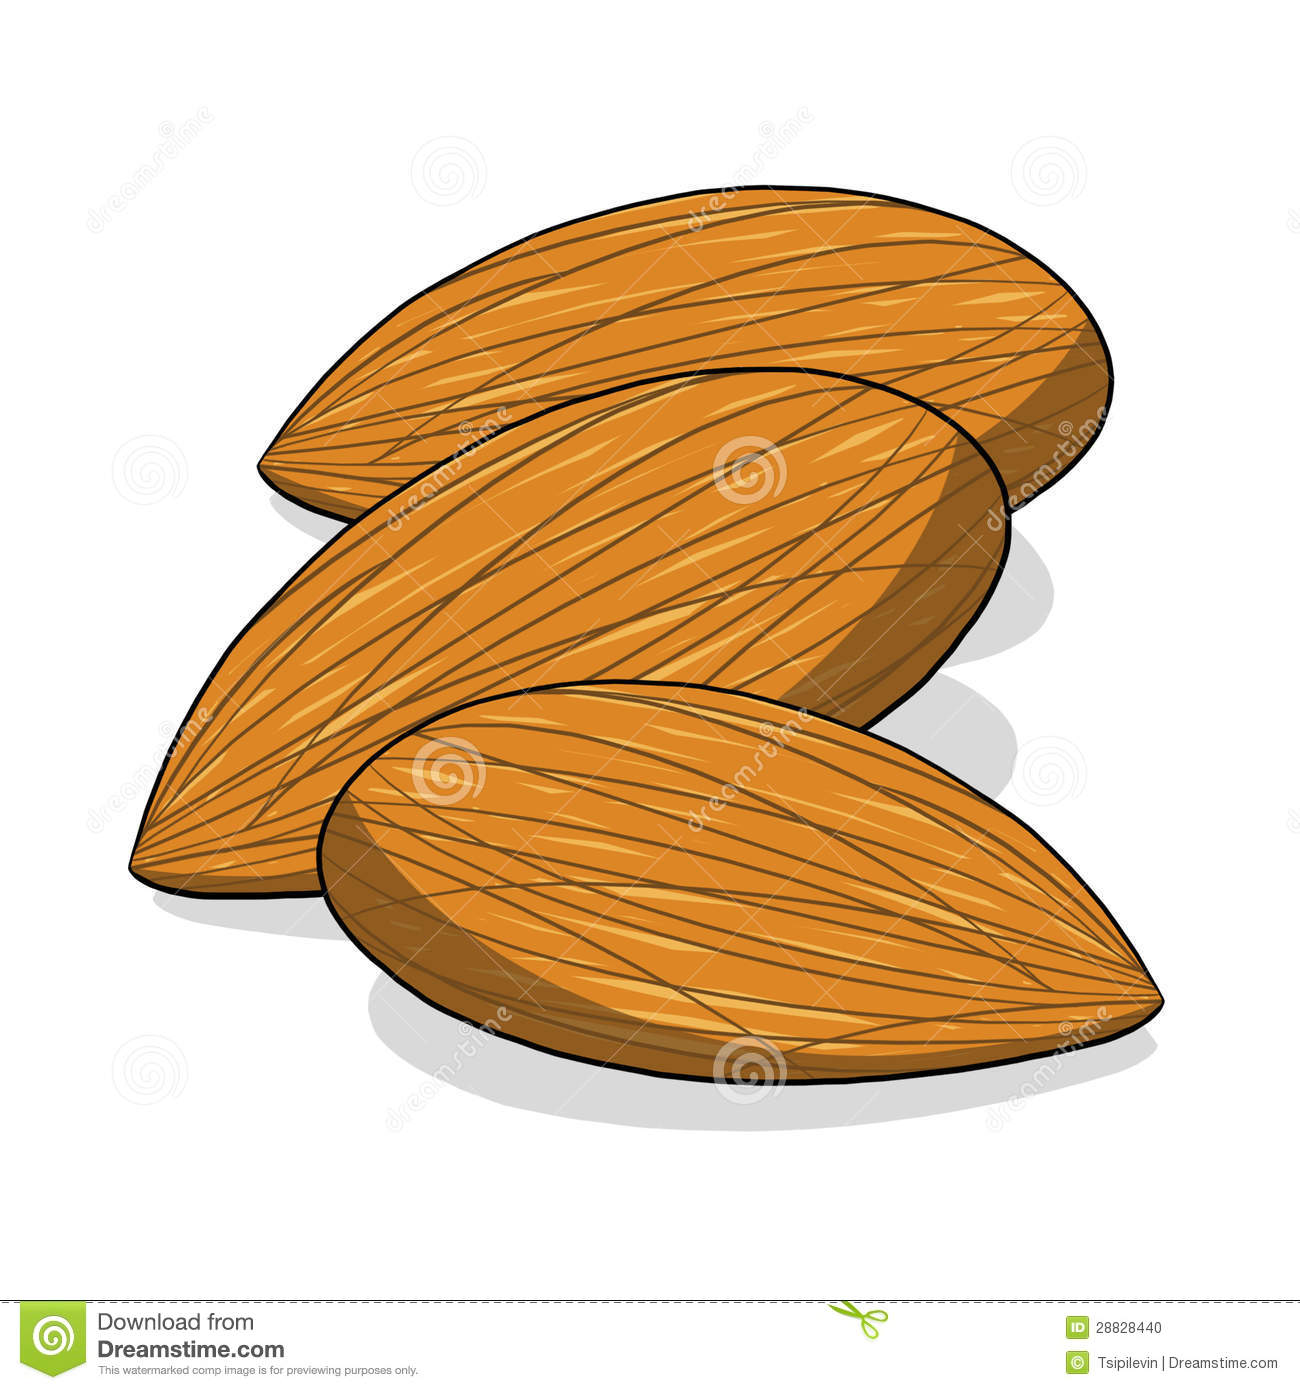 More similar stock images of almond nuts illustration